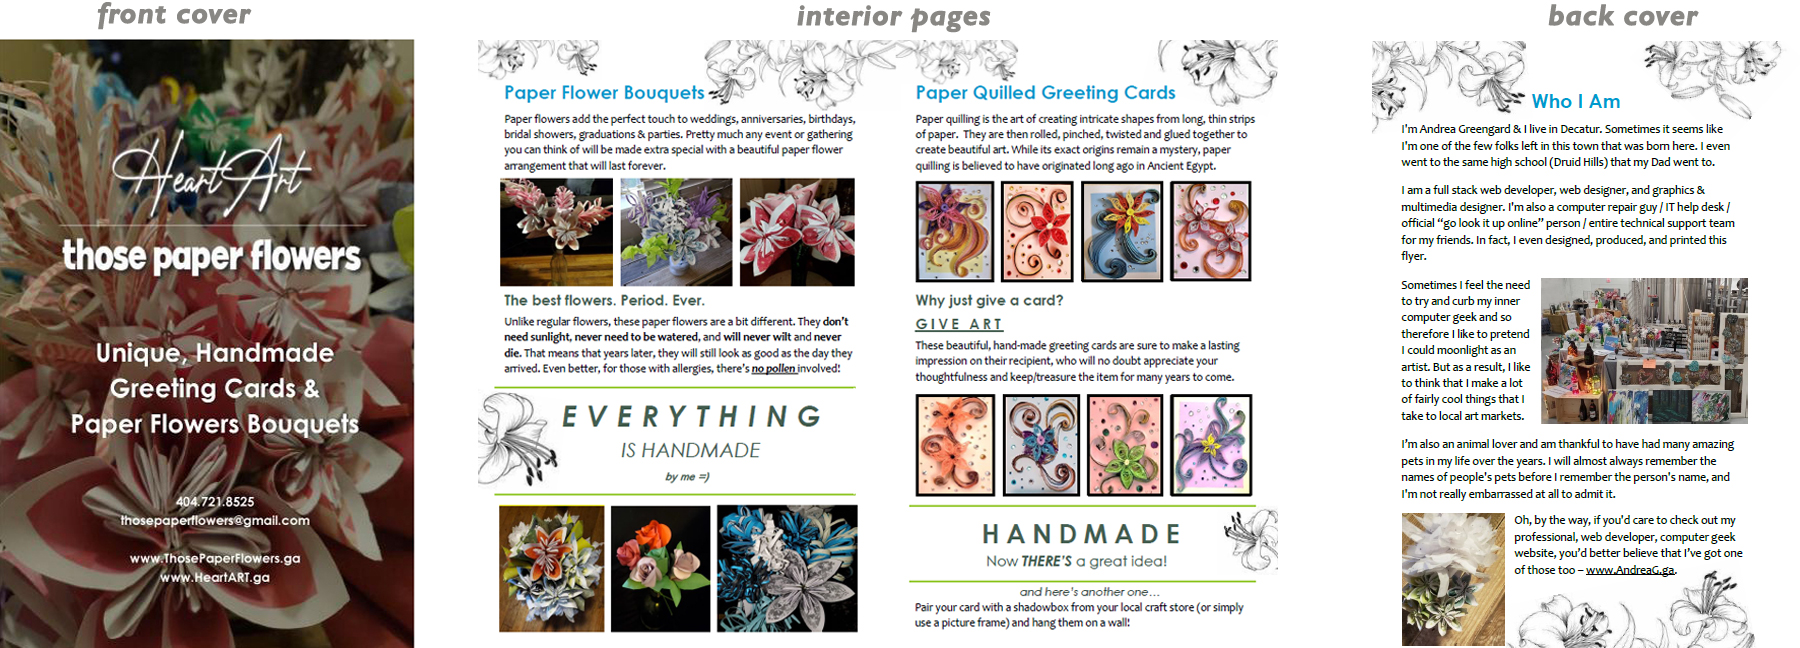 Mulitpage, two-fold flyer for Those Paper Flowers, who makes paper flower bouquets and handmade paper quilled greeting cards - <a href='http://thosepaperflowers.ga' target=_blank>www.ThosePaperFlowers.ga</a>